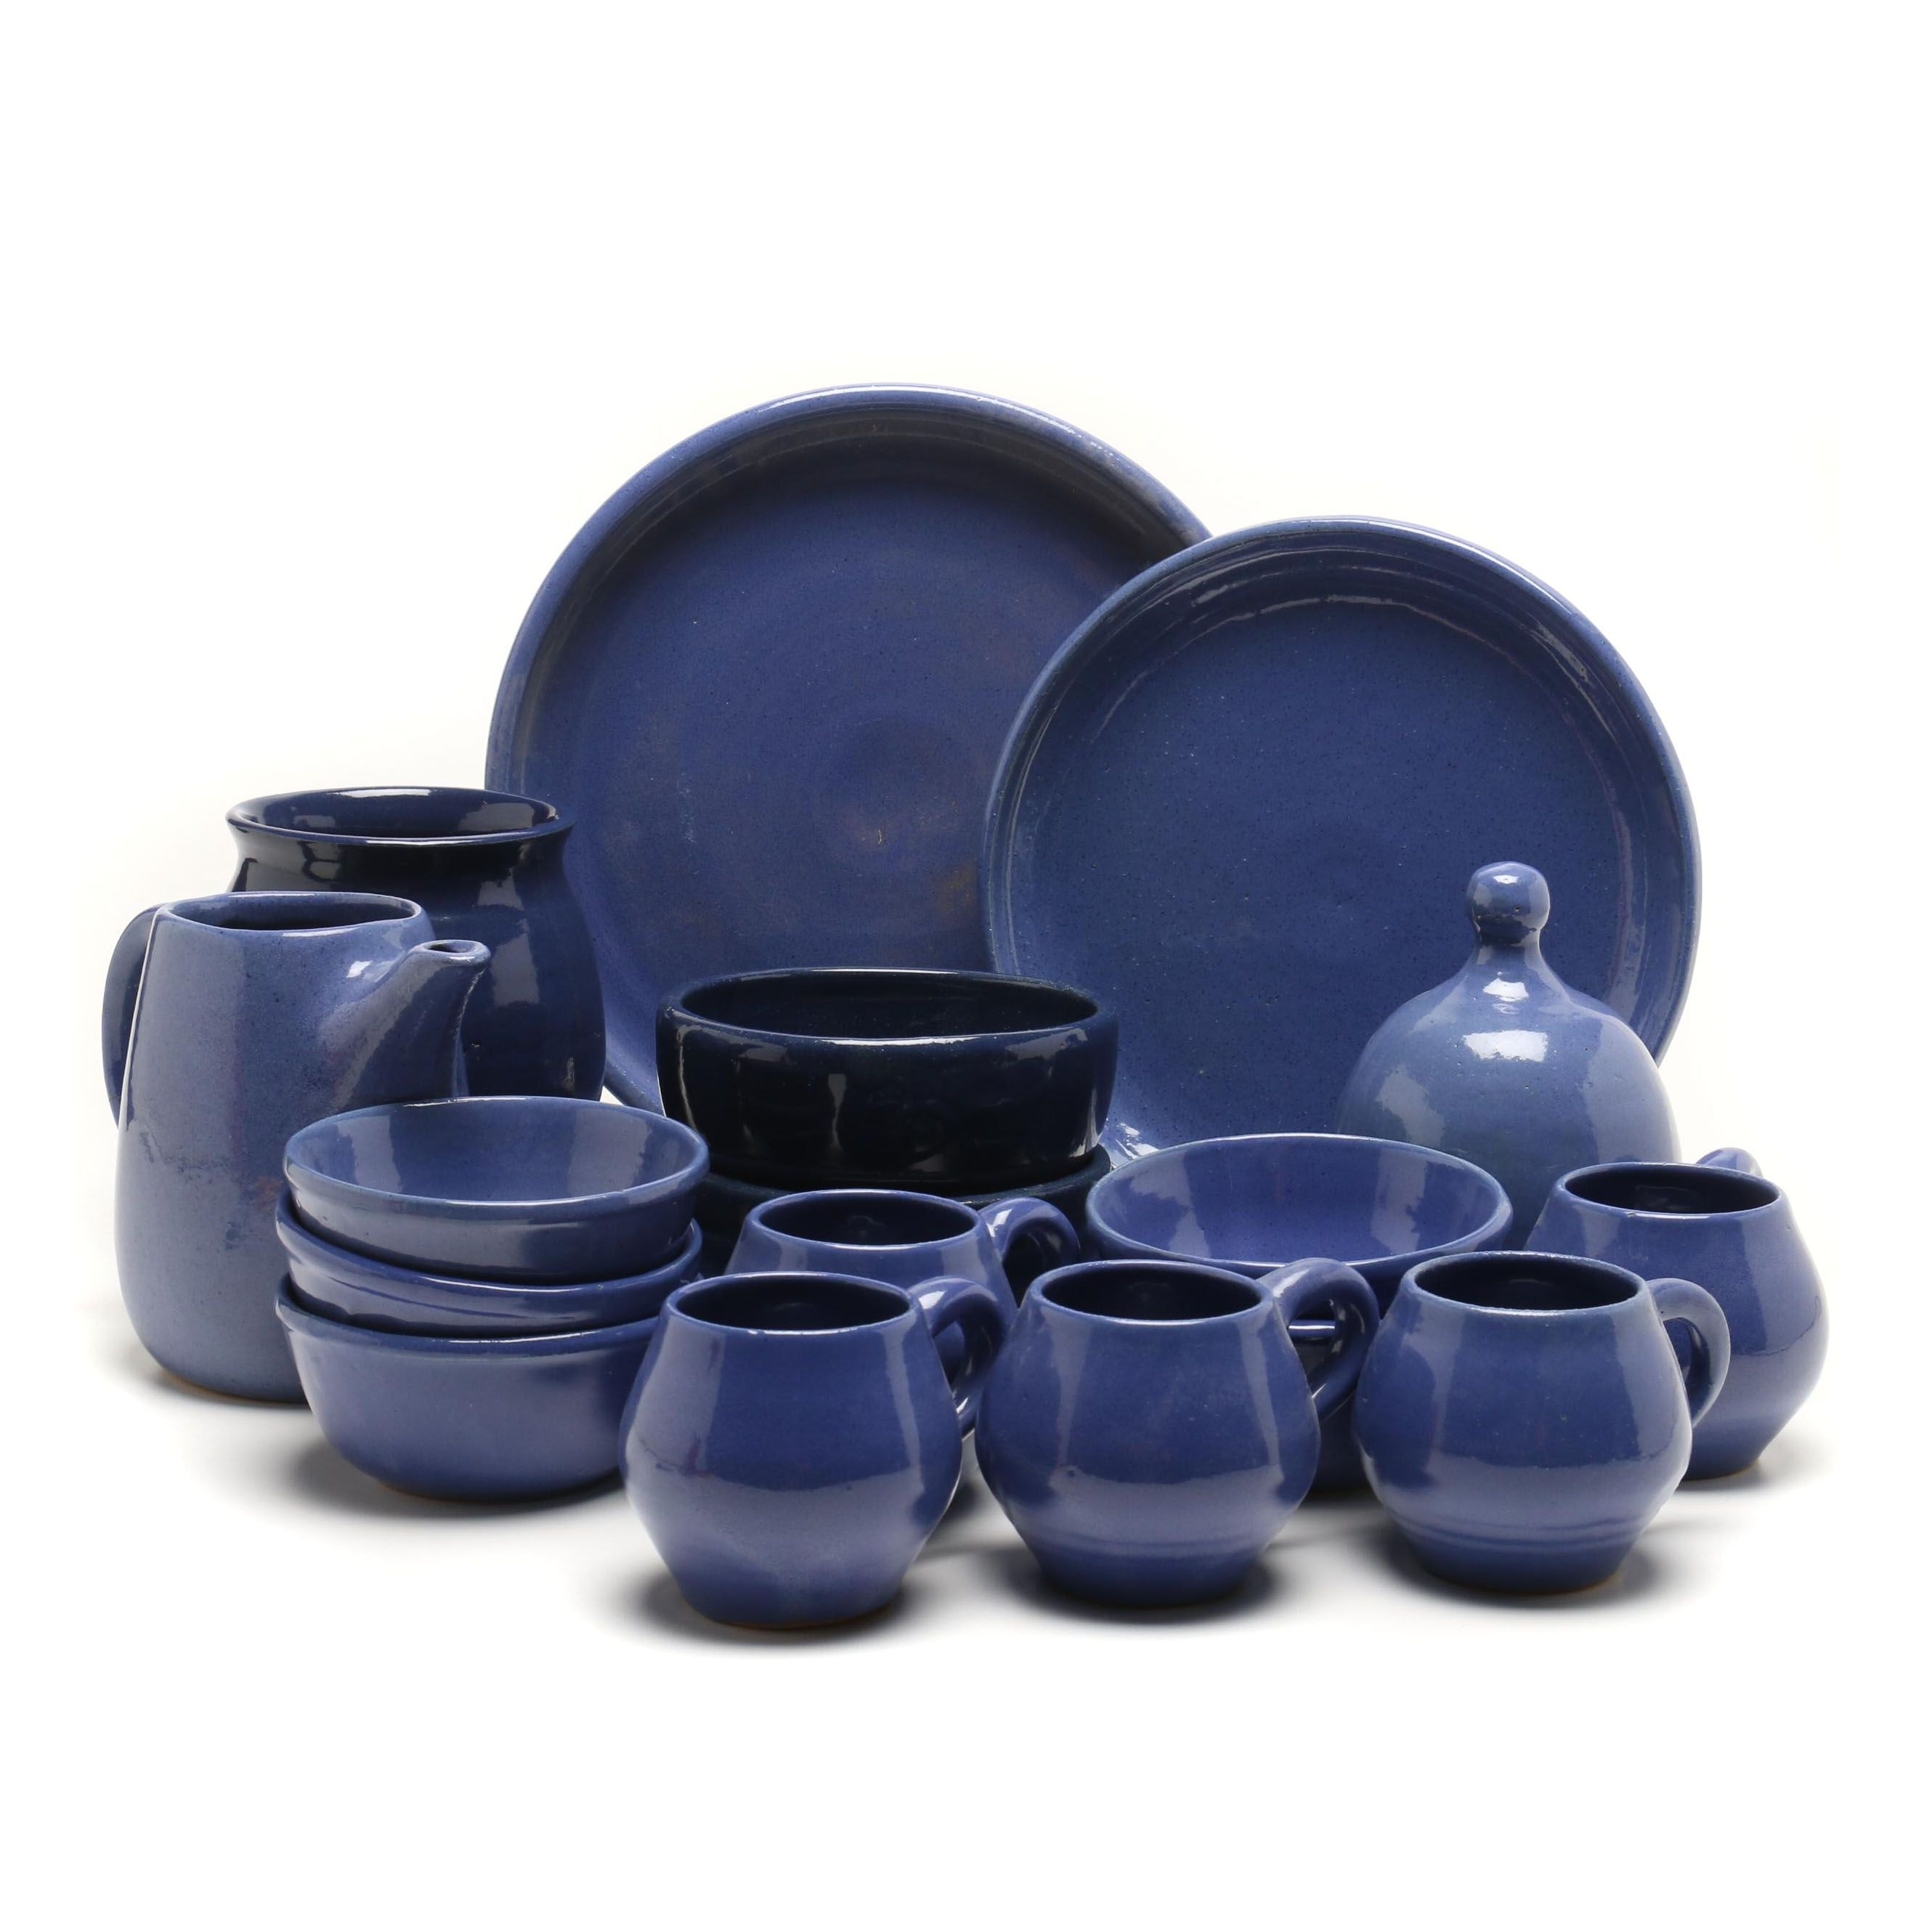 Bybee Pottery Blue Stoneware Tableware